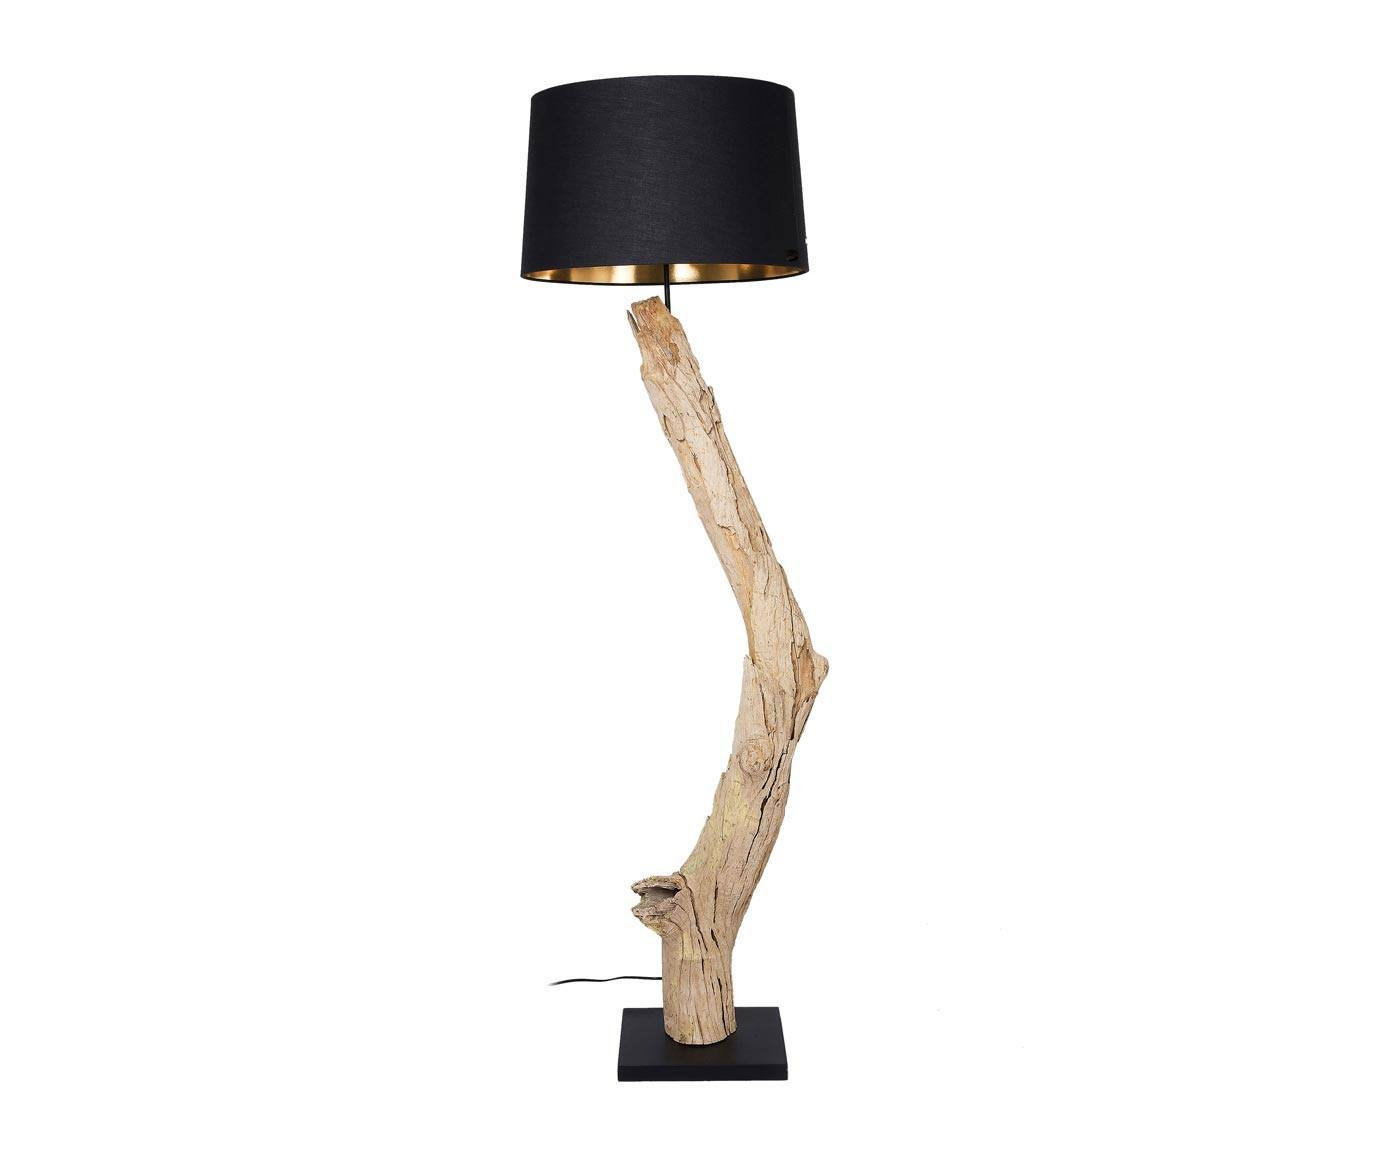 fabriquez une lampe partir d 39 une branche d 39 arbre diy deco. Black Bedroom Furniture Sets. Home Design Ideas